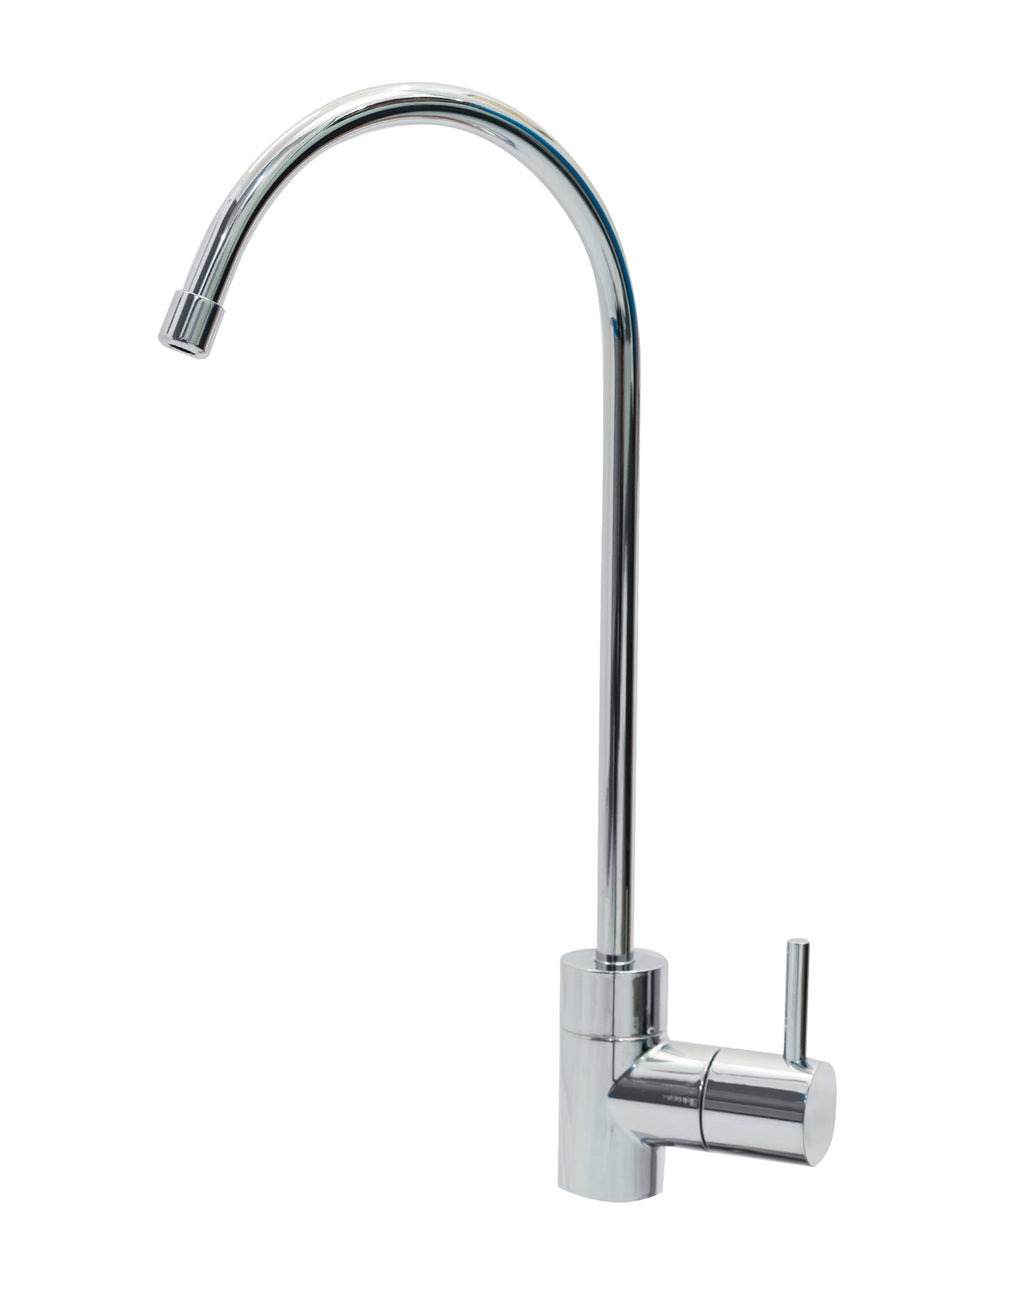 Faucet A - Green Filter System